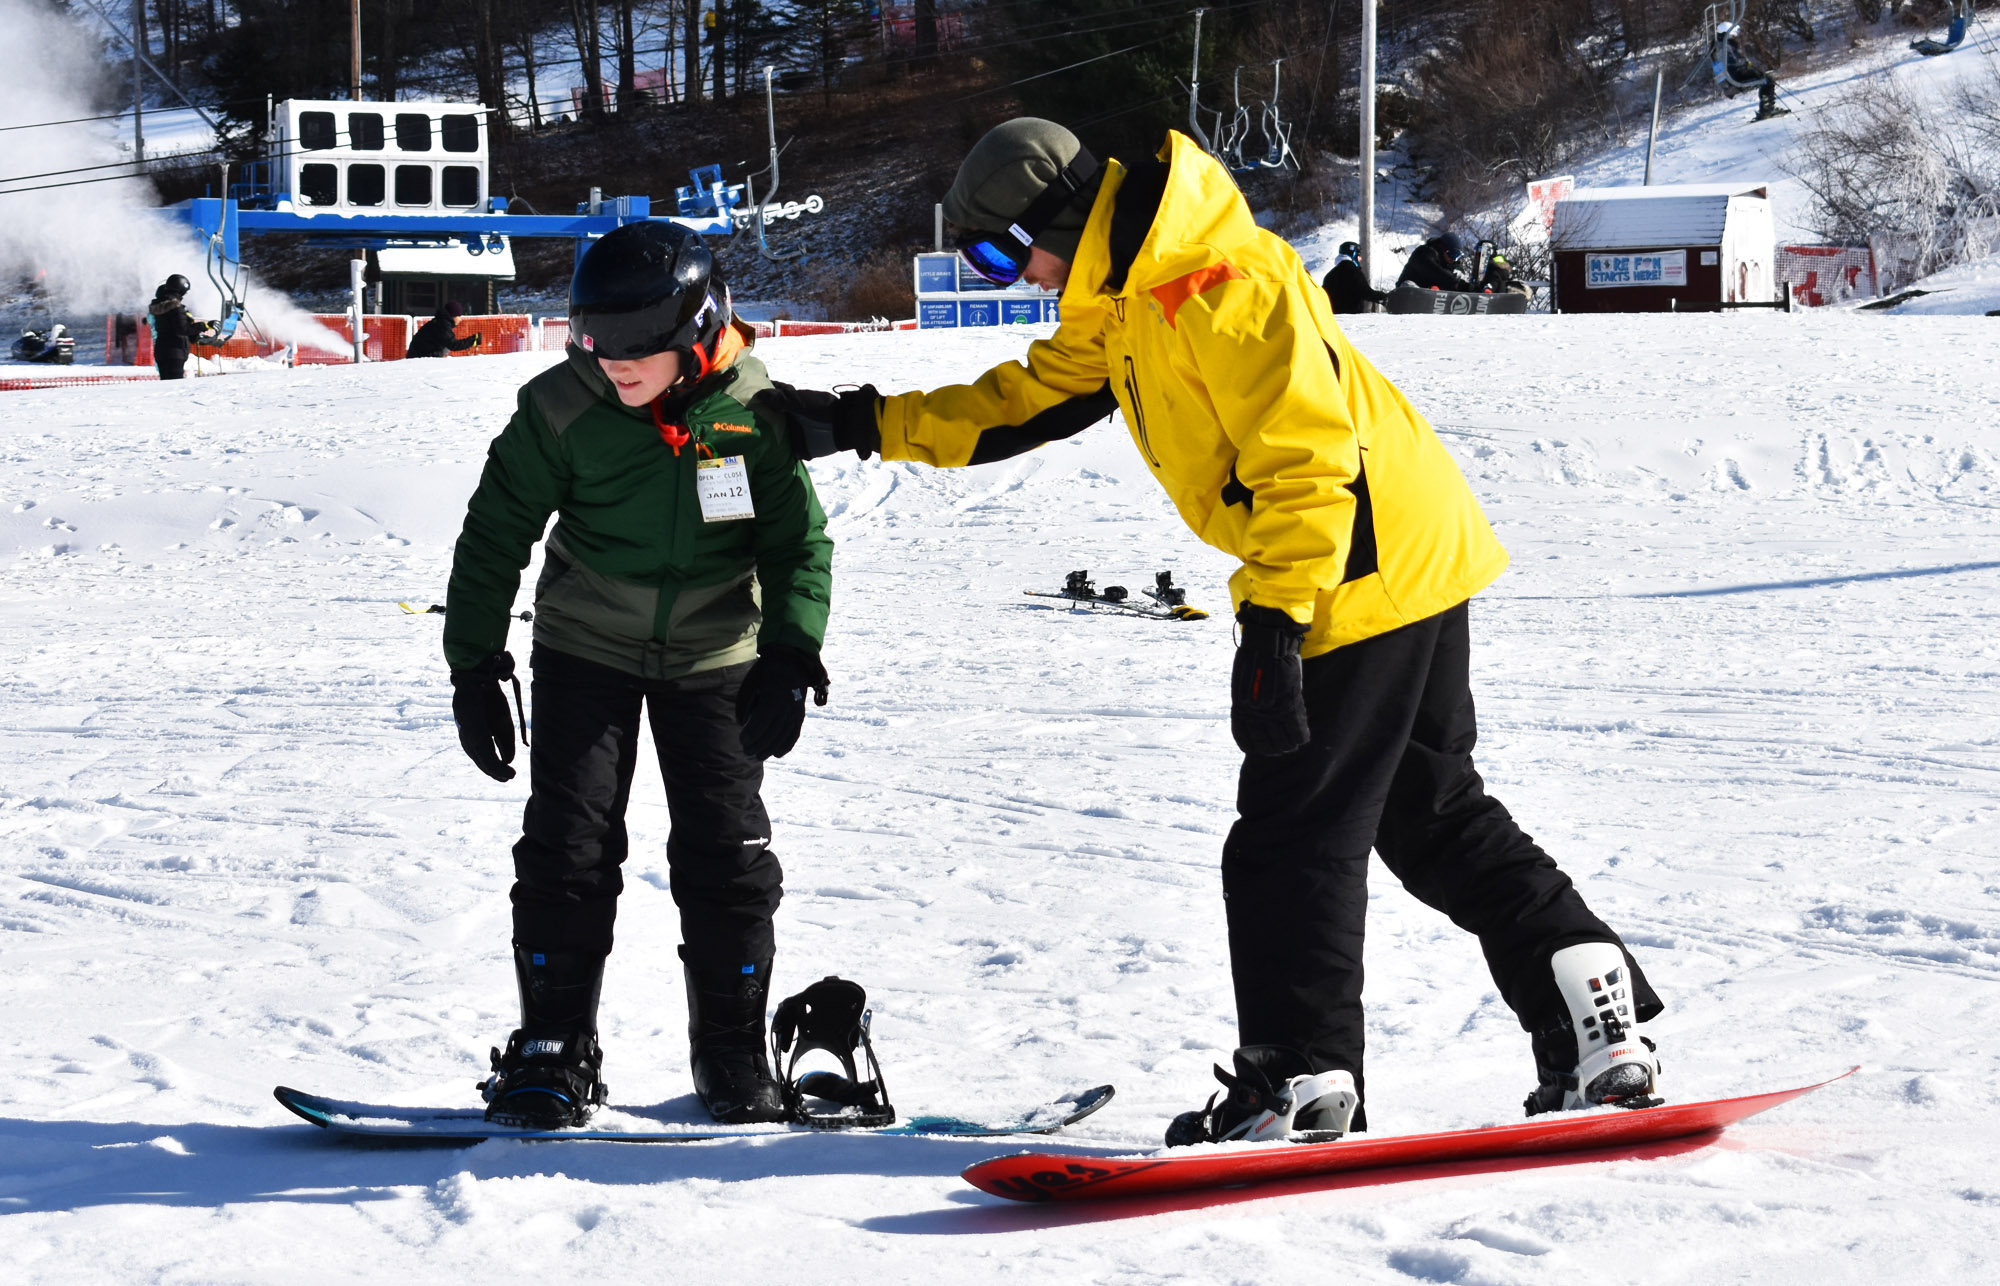 Beginner Snowboard Lesson at Shawnee Mountain